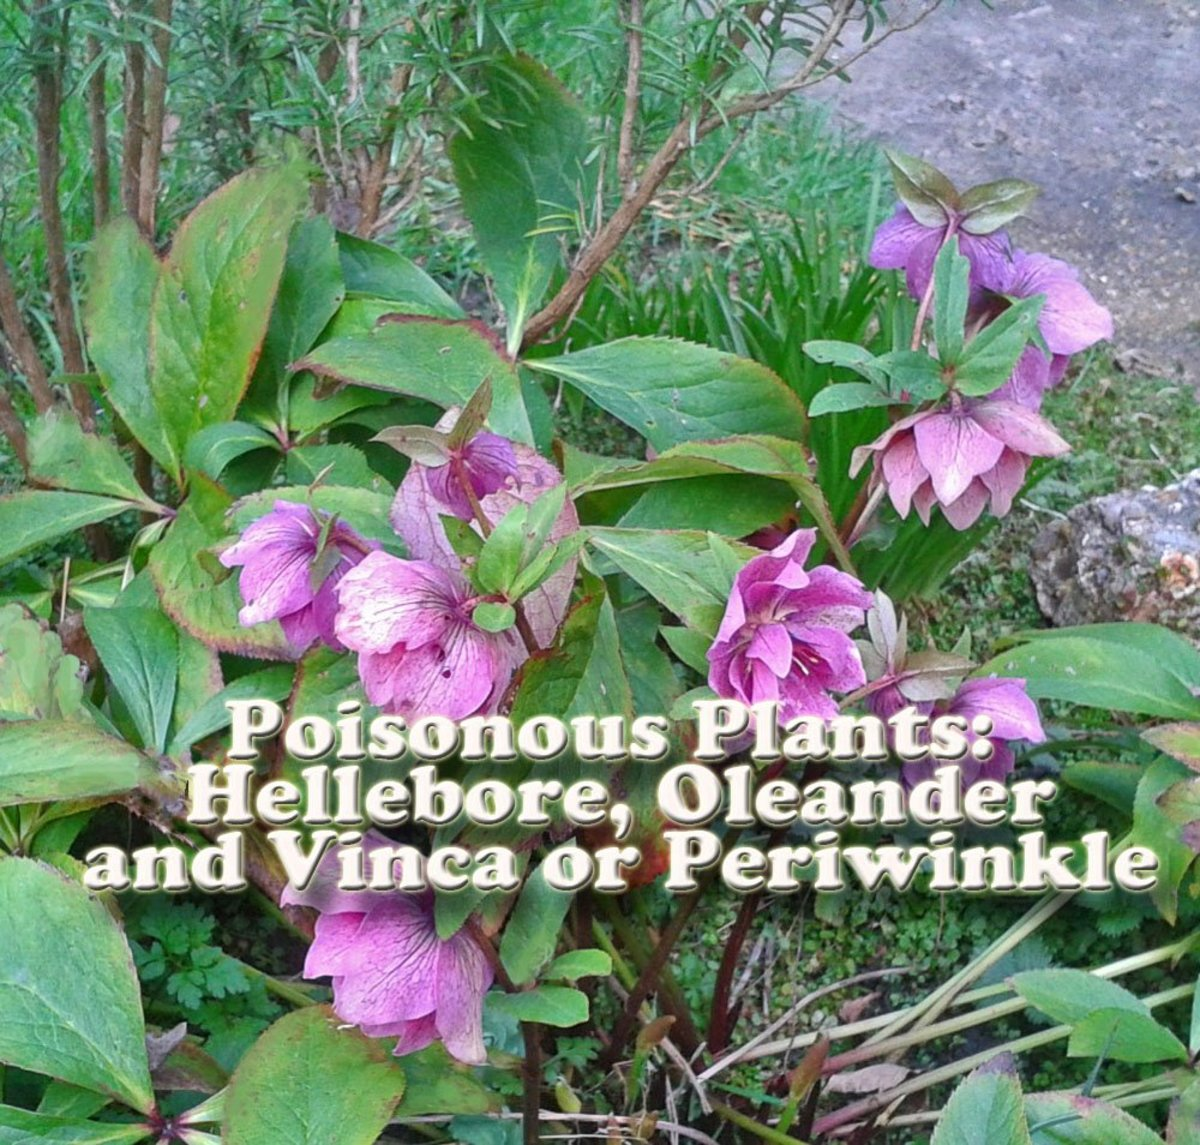 Poisonous Plants: Hellebore, Oleander, and Vinca or Periwinkle